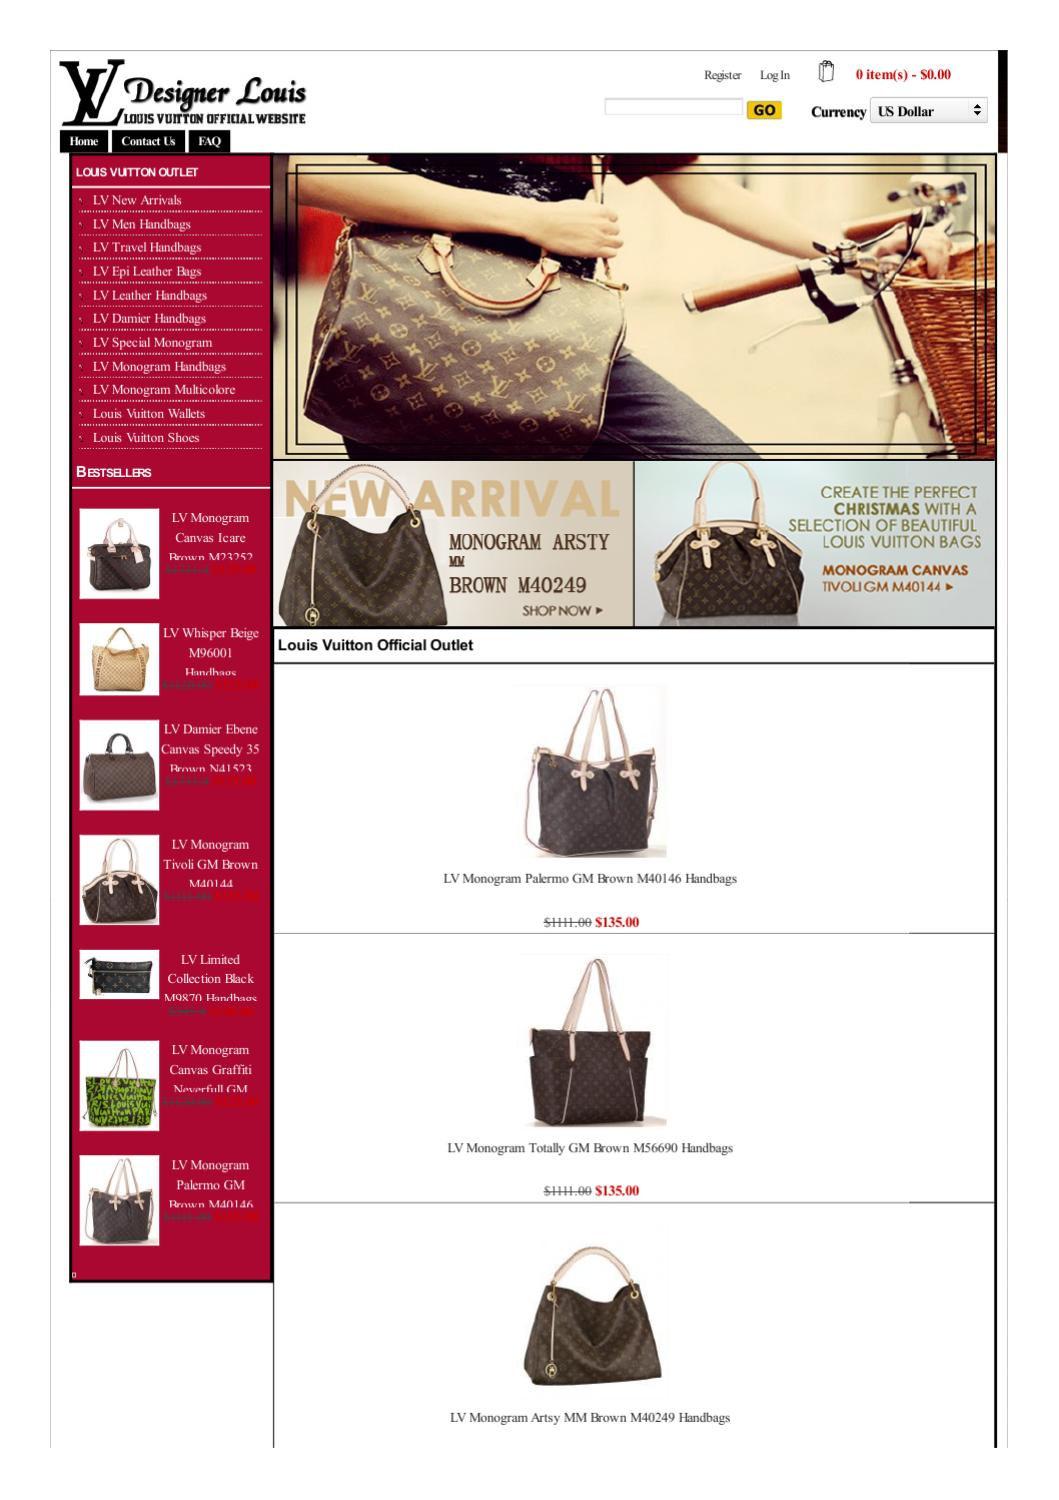 c0a63ae9995 Authentic Louis Vuitton Official Website